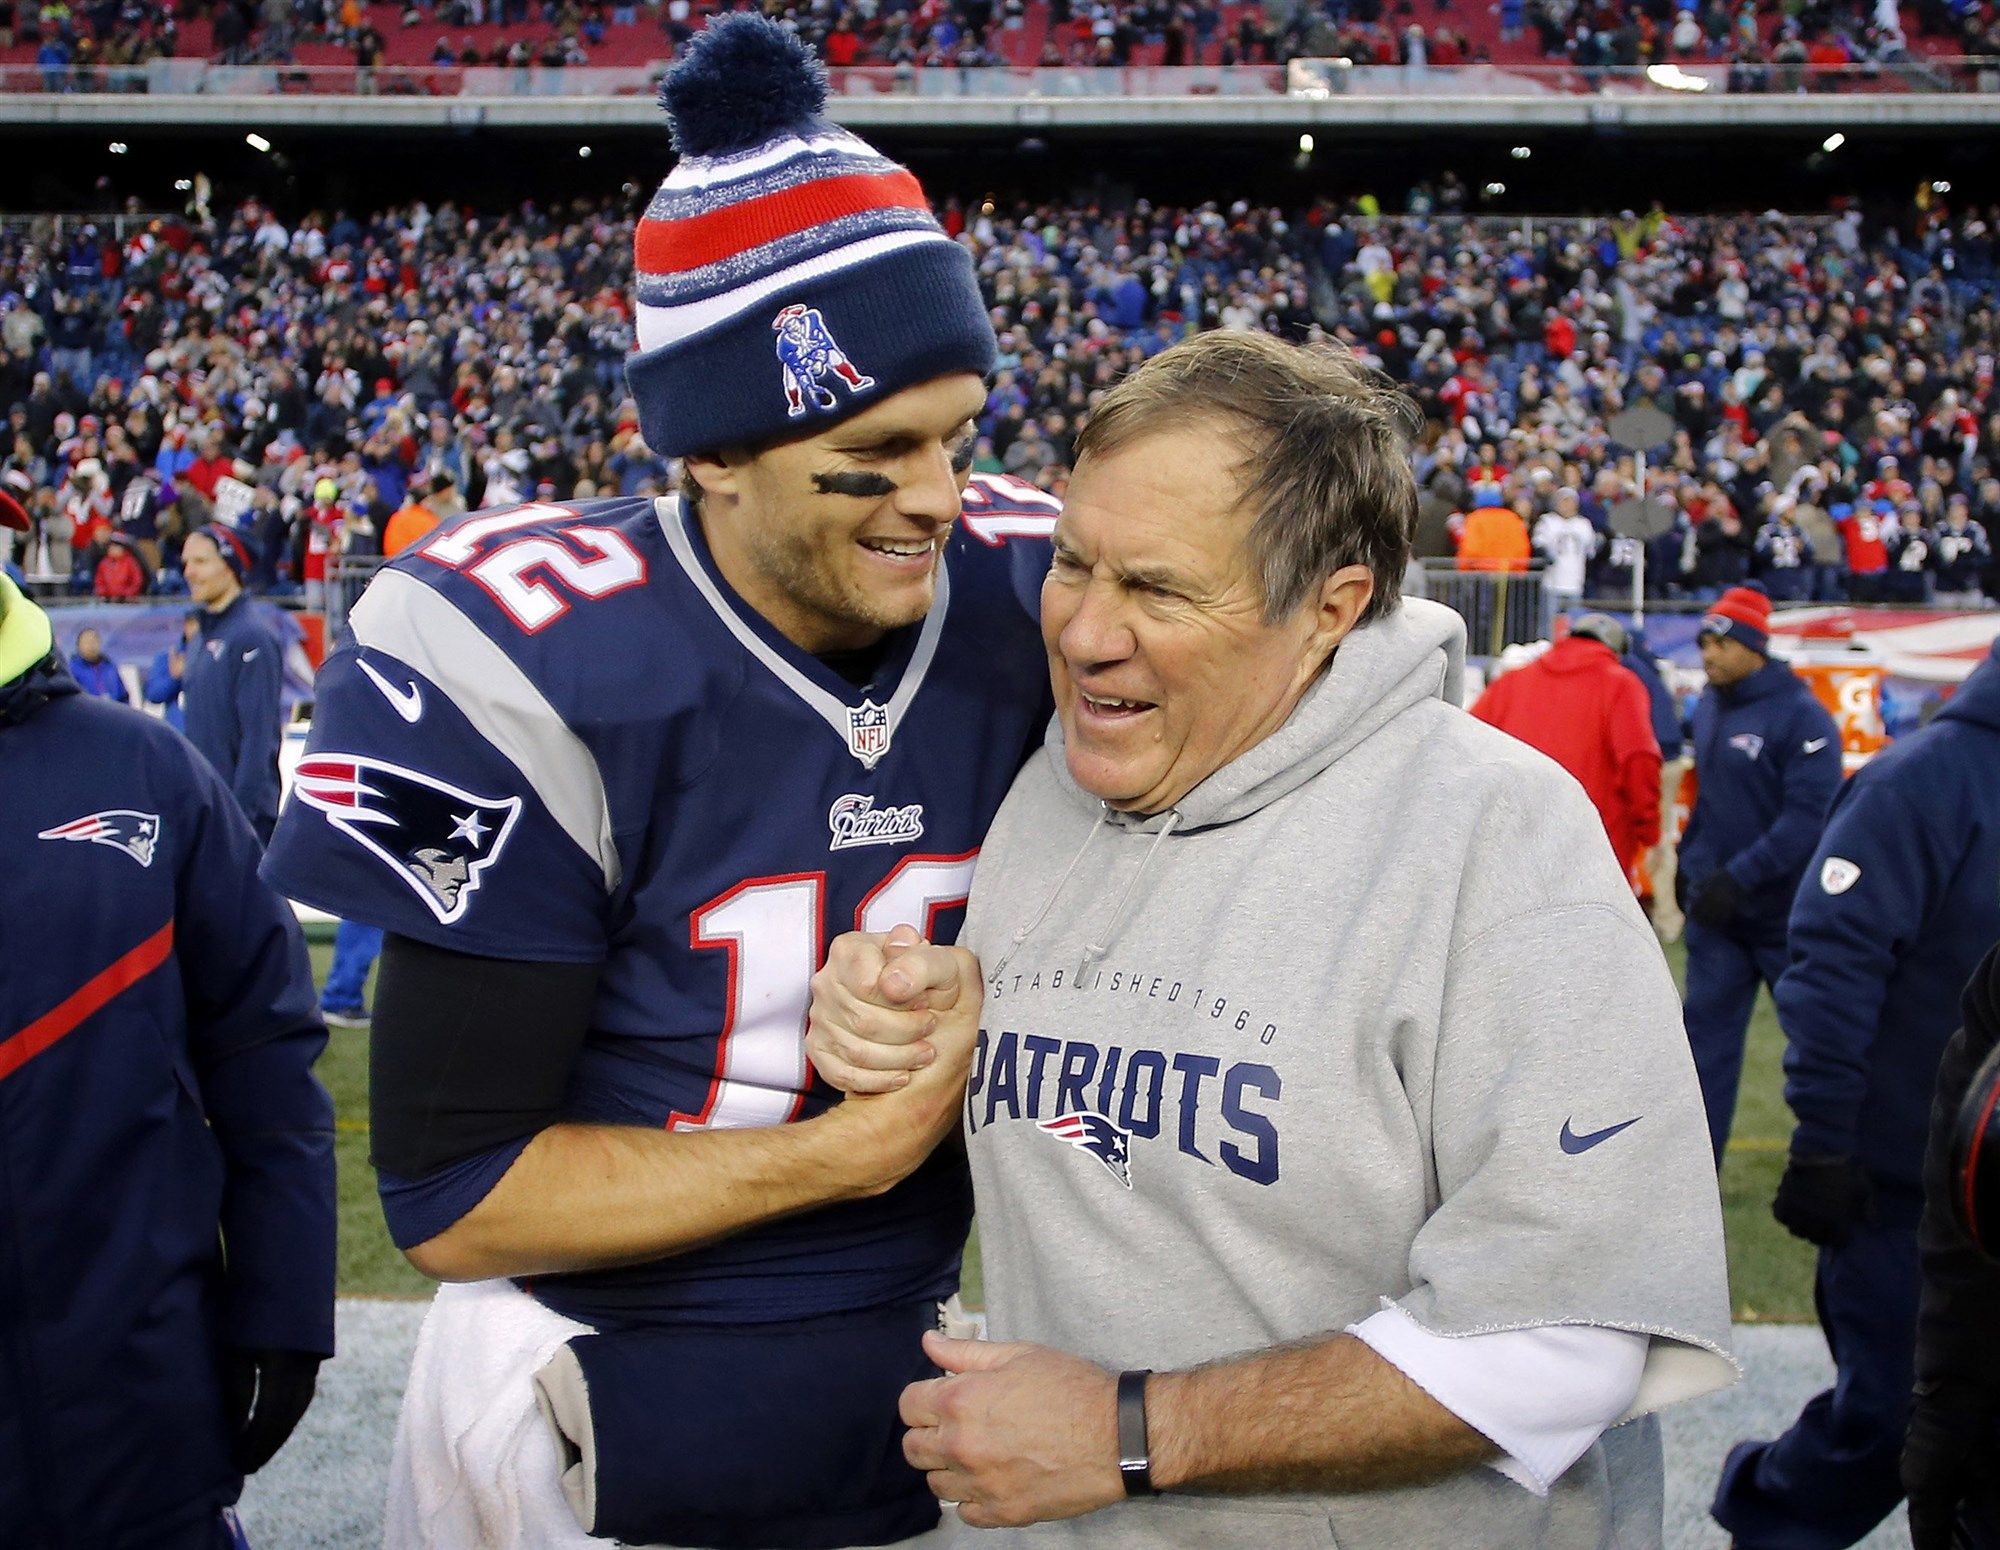 Opinion Nfl coaches, New england patriots, Patriots